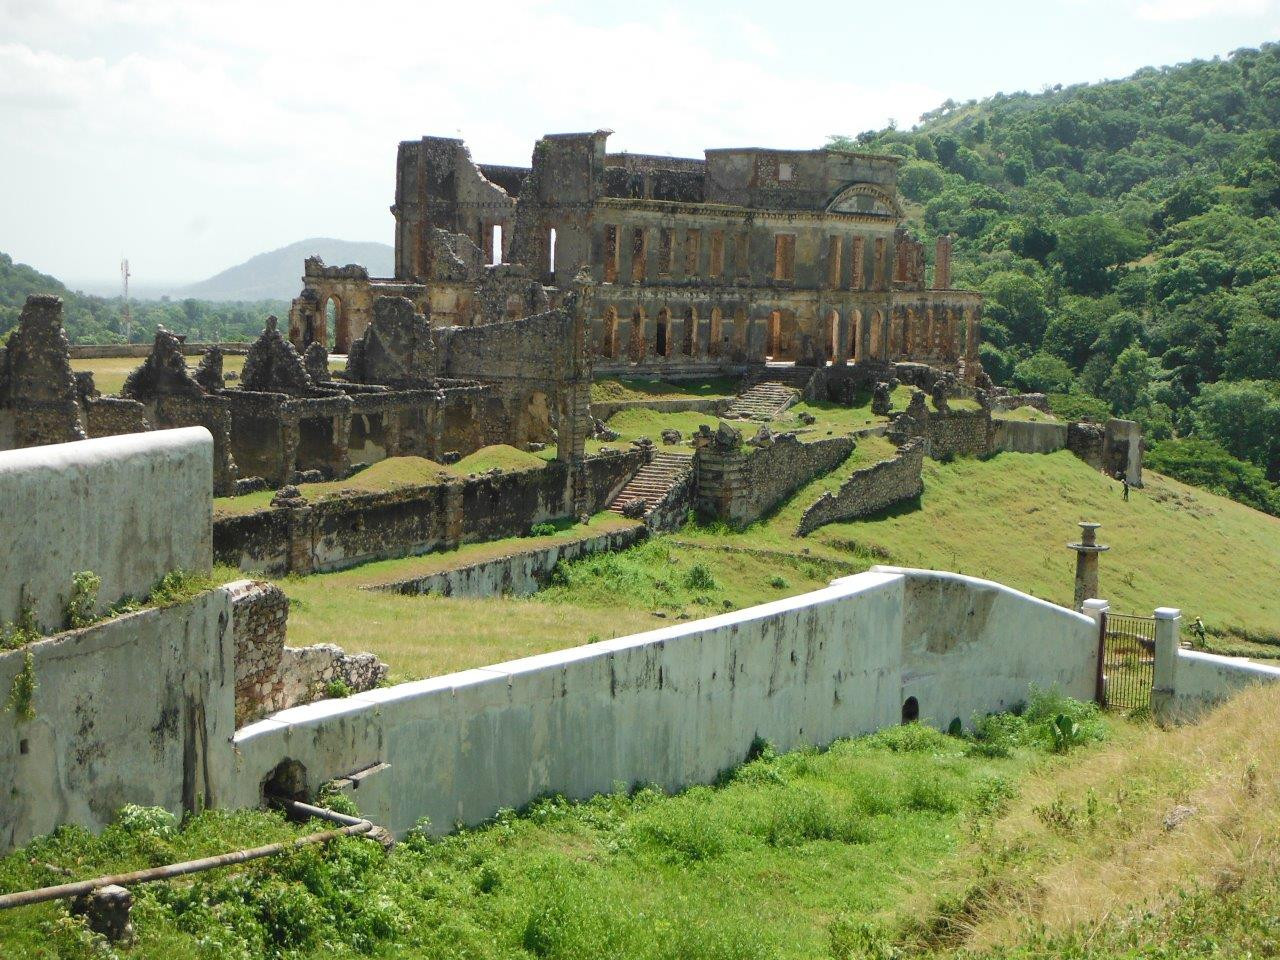 The ruins of Sans-Souci Palace – a national park where King Christophe lived